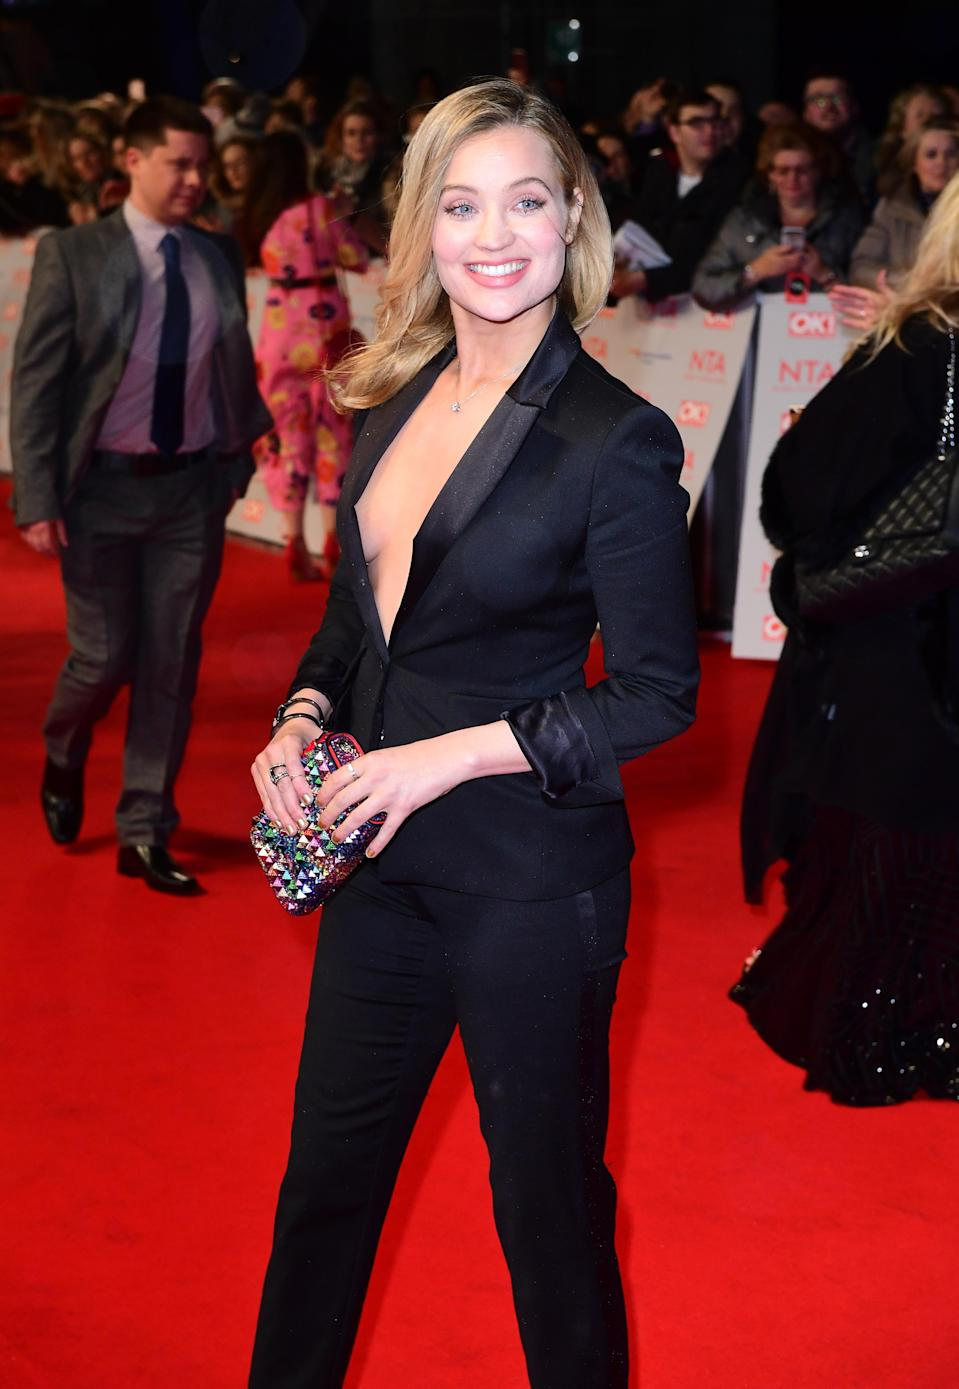 Laura Whitmore attending the National Television Awards 2018 held at the O2 Arena, London. (PA)